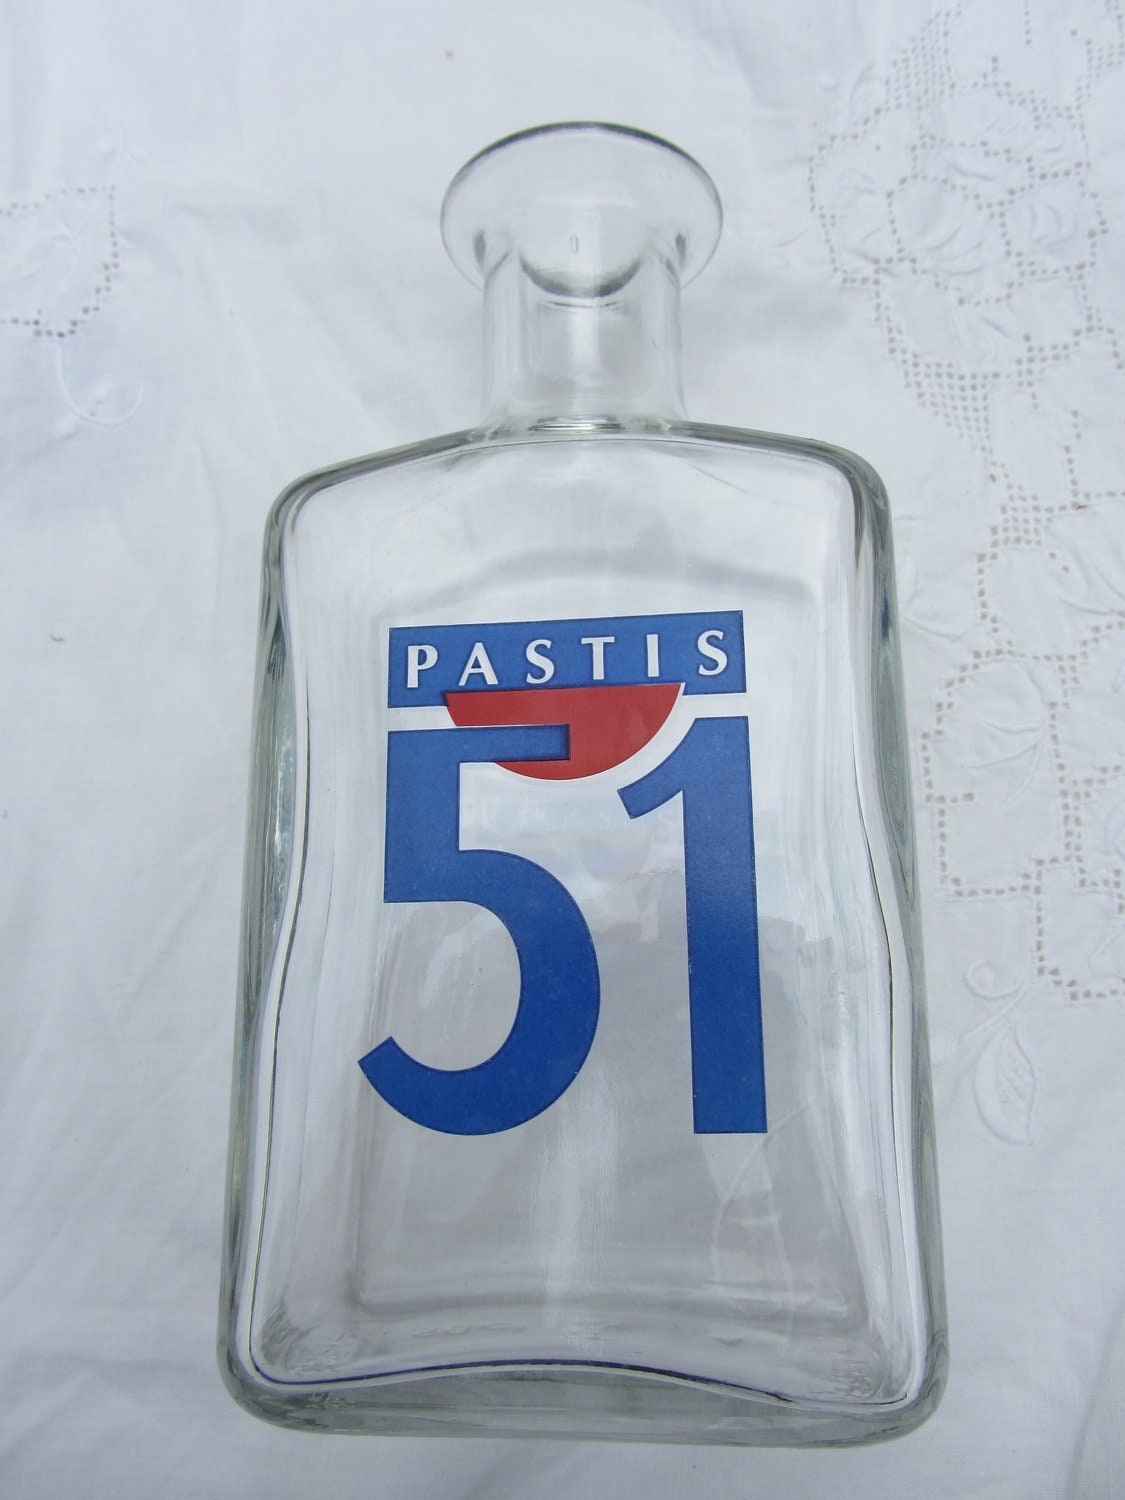 French vintage pastis 39 51 39 carafe with 4 by poitoubrocante for Carafe pastis 51 piscine